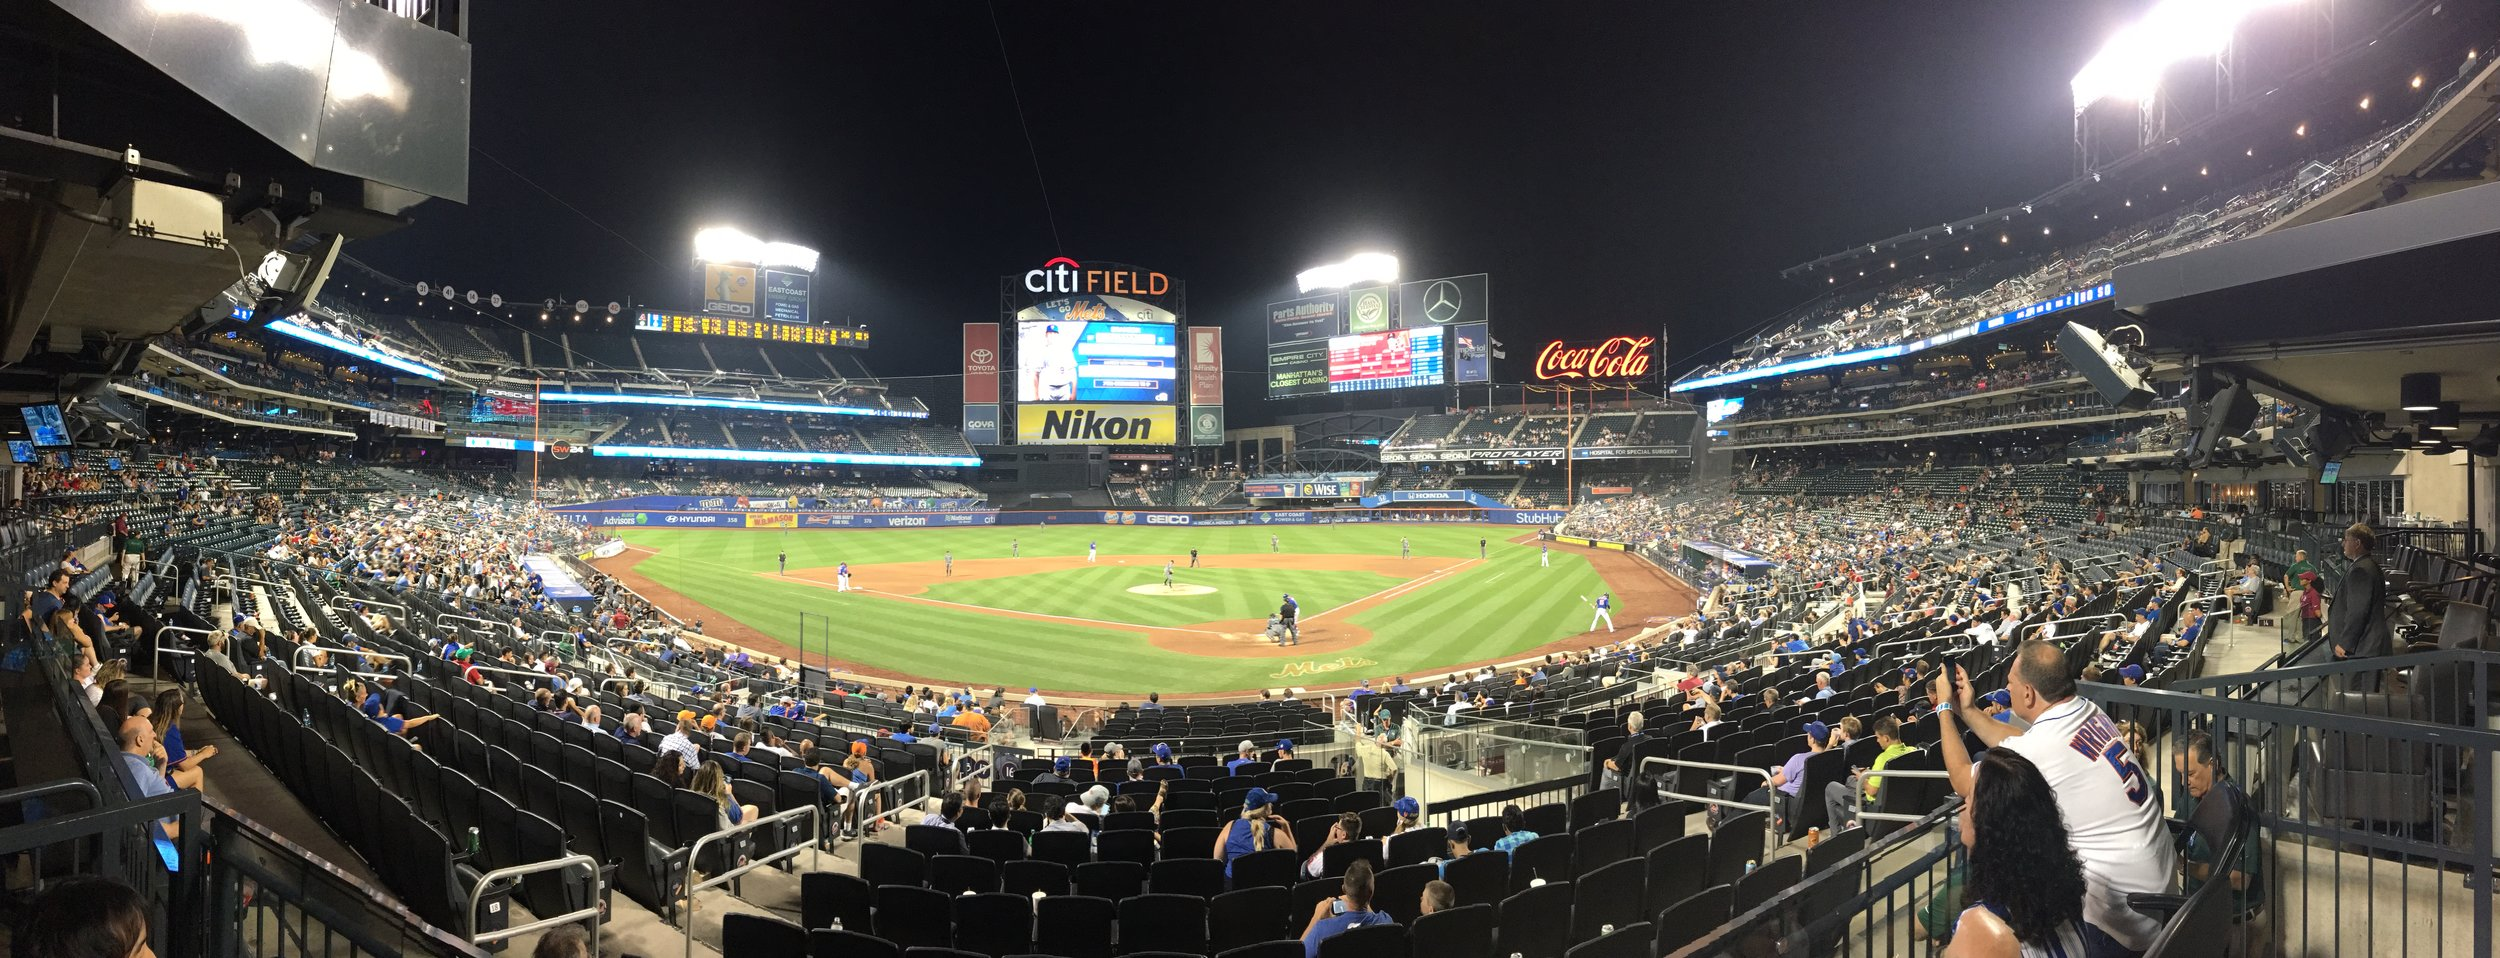 CitiField 9th Inning Panorama (8_22_17).JPG